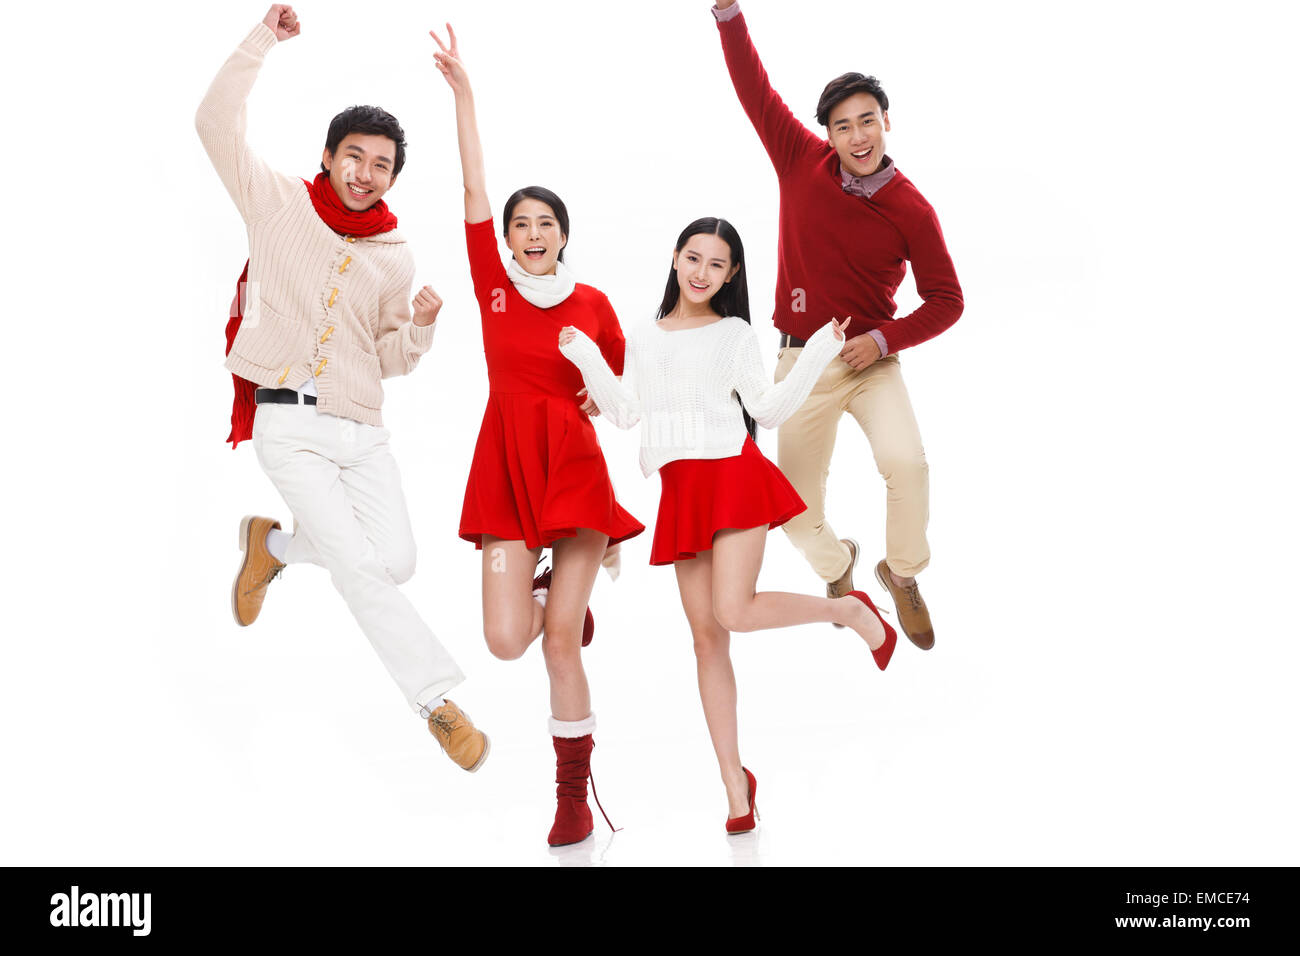 Youthful vitality of the young men and women jump - Stock Image